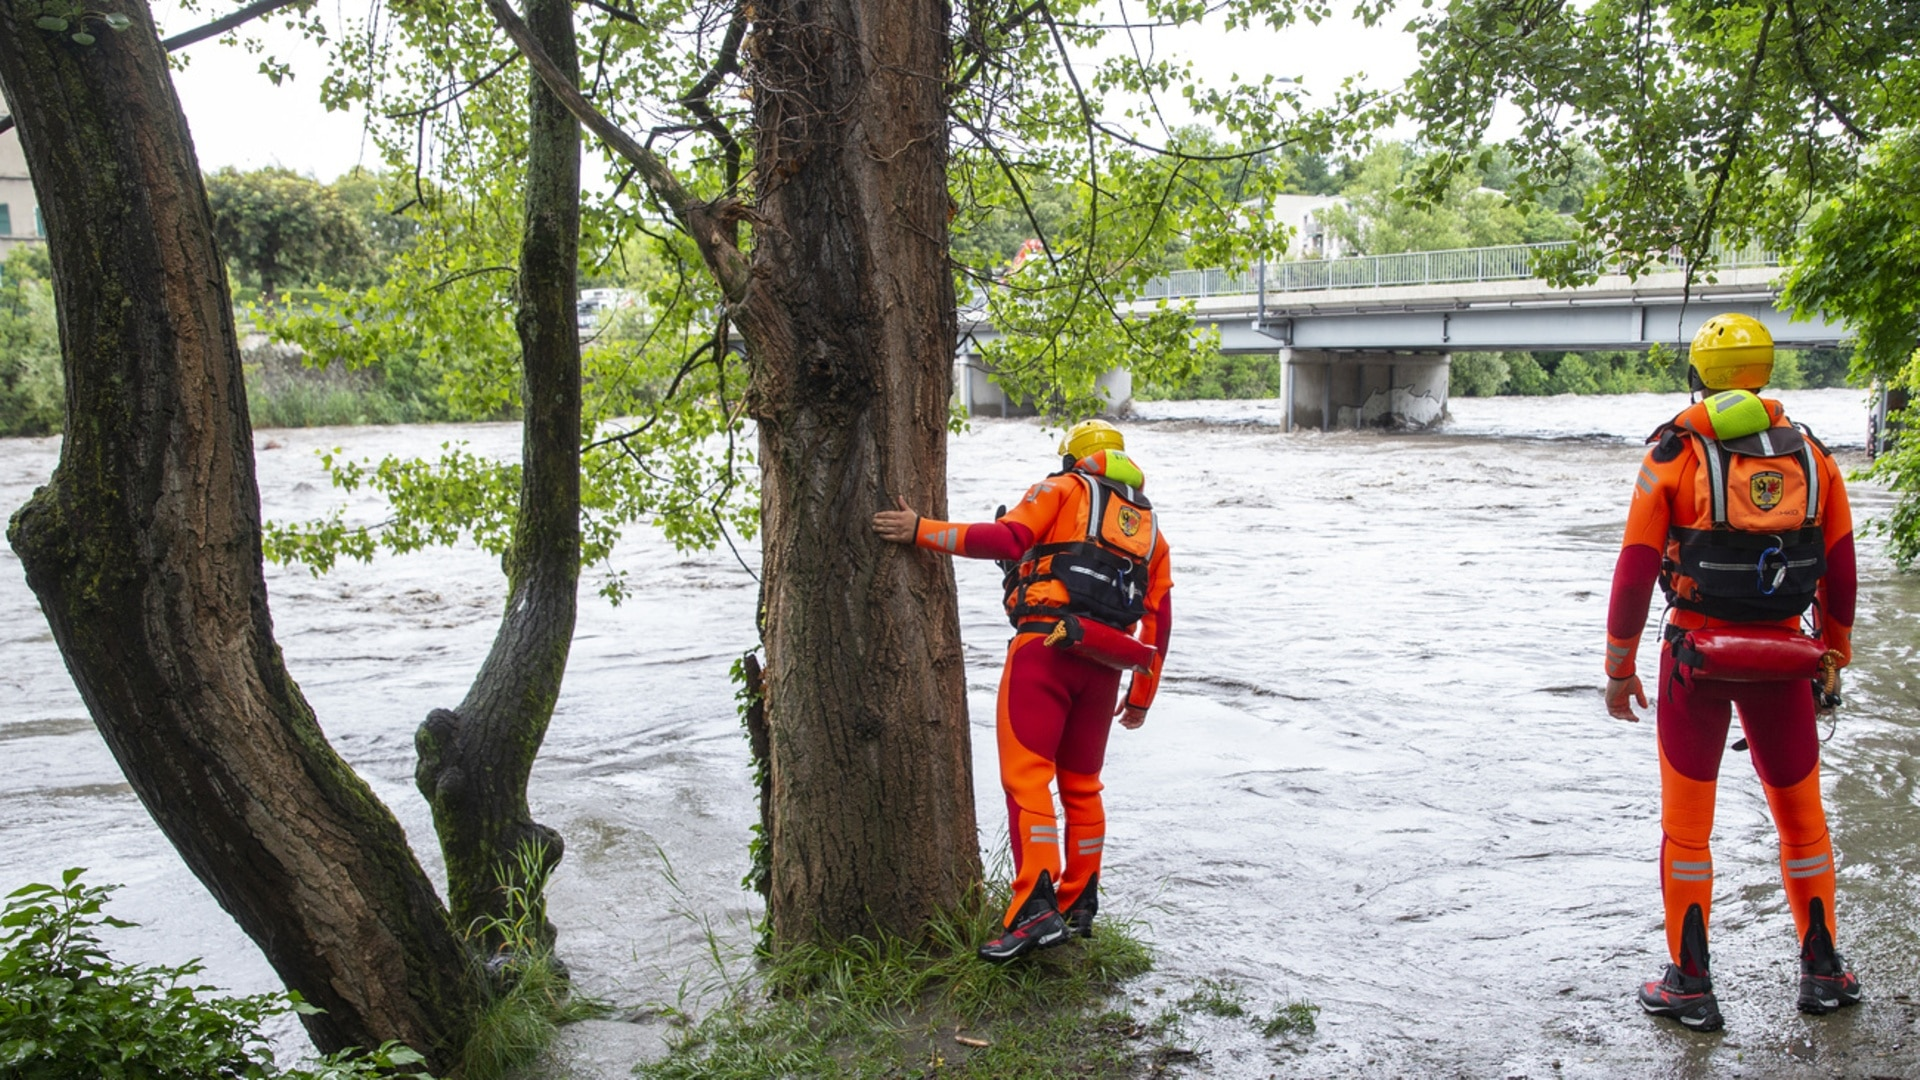 Switzerland issues more flood warnings after heavy thunderstorms - SWI  swissinfo.ch